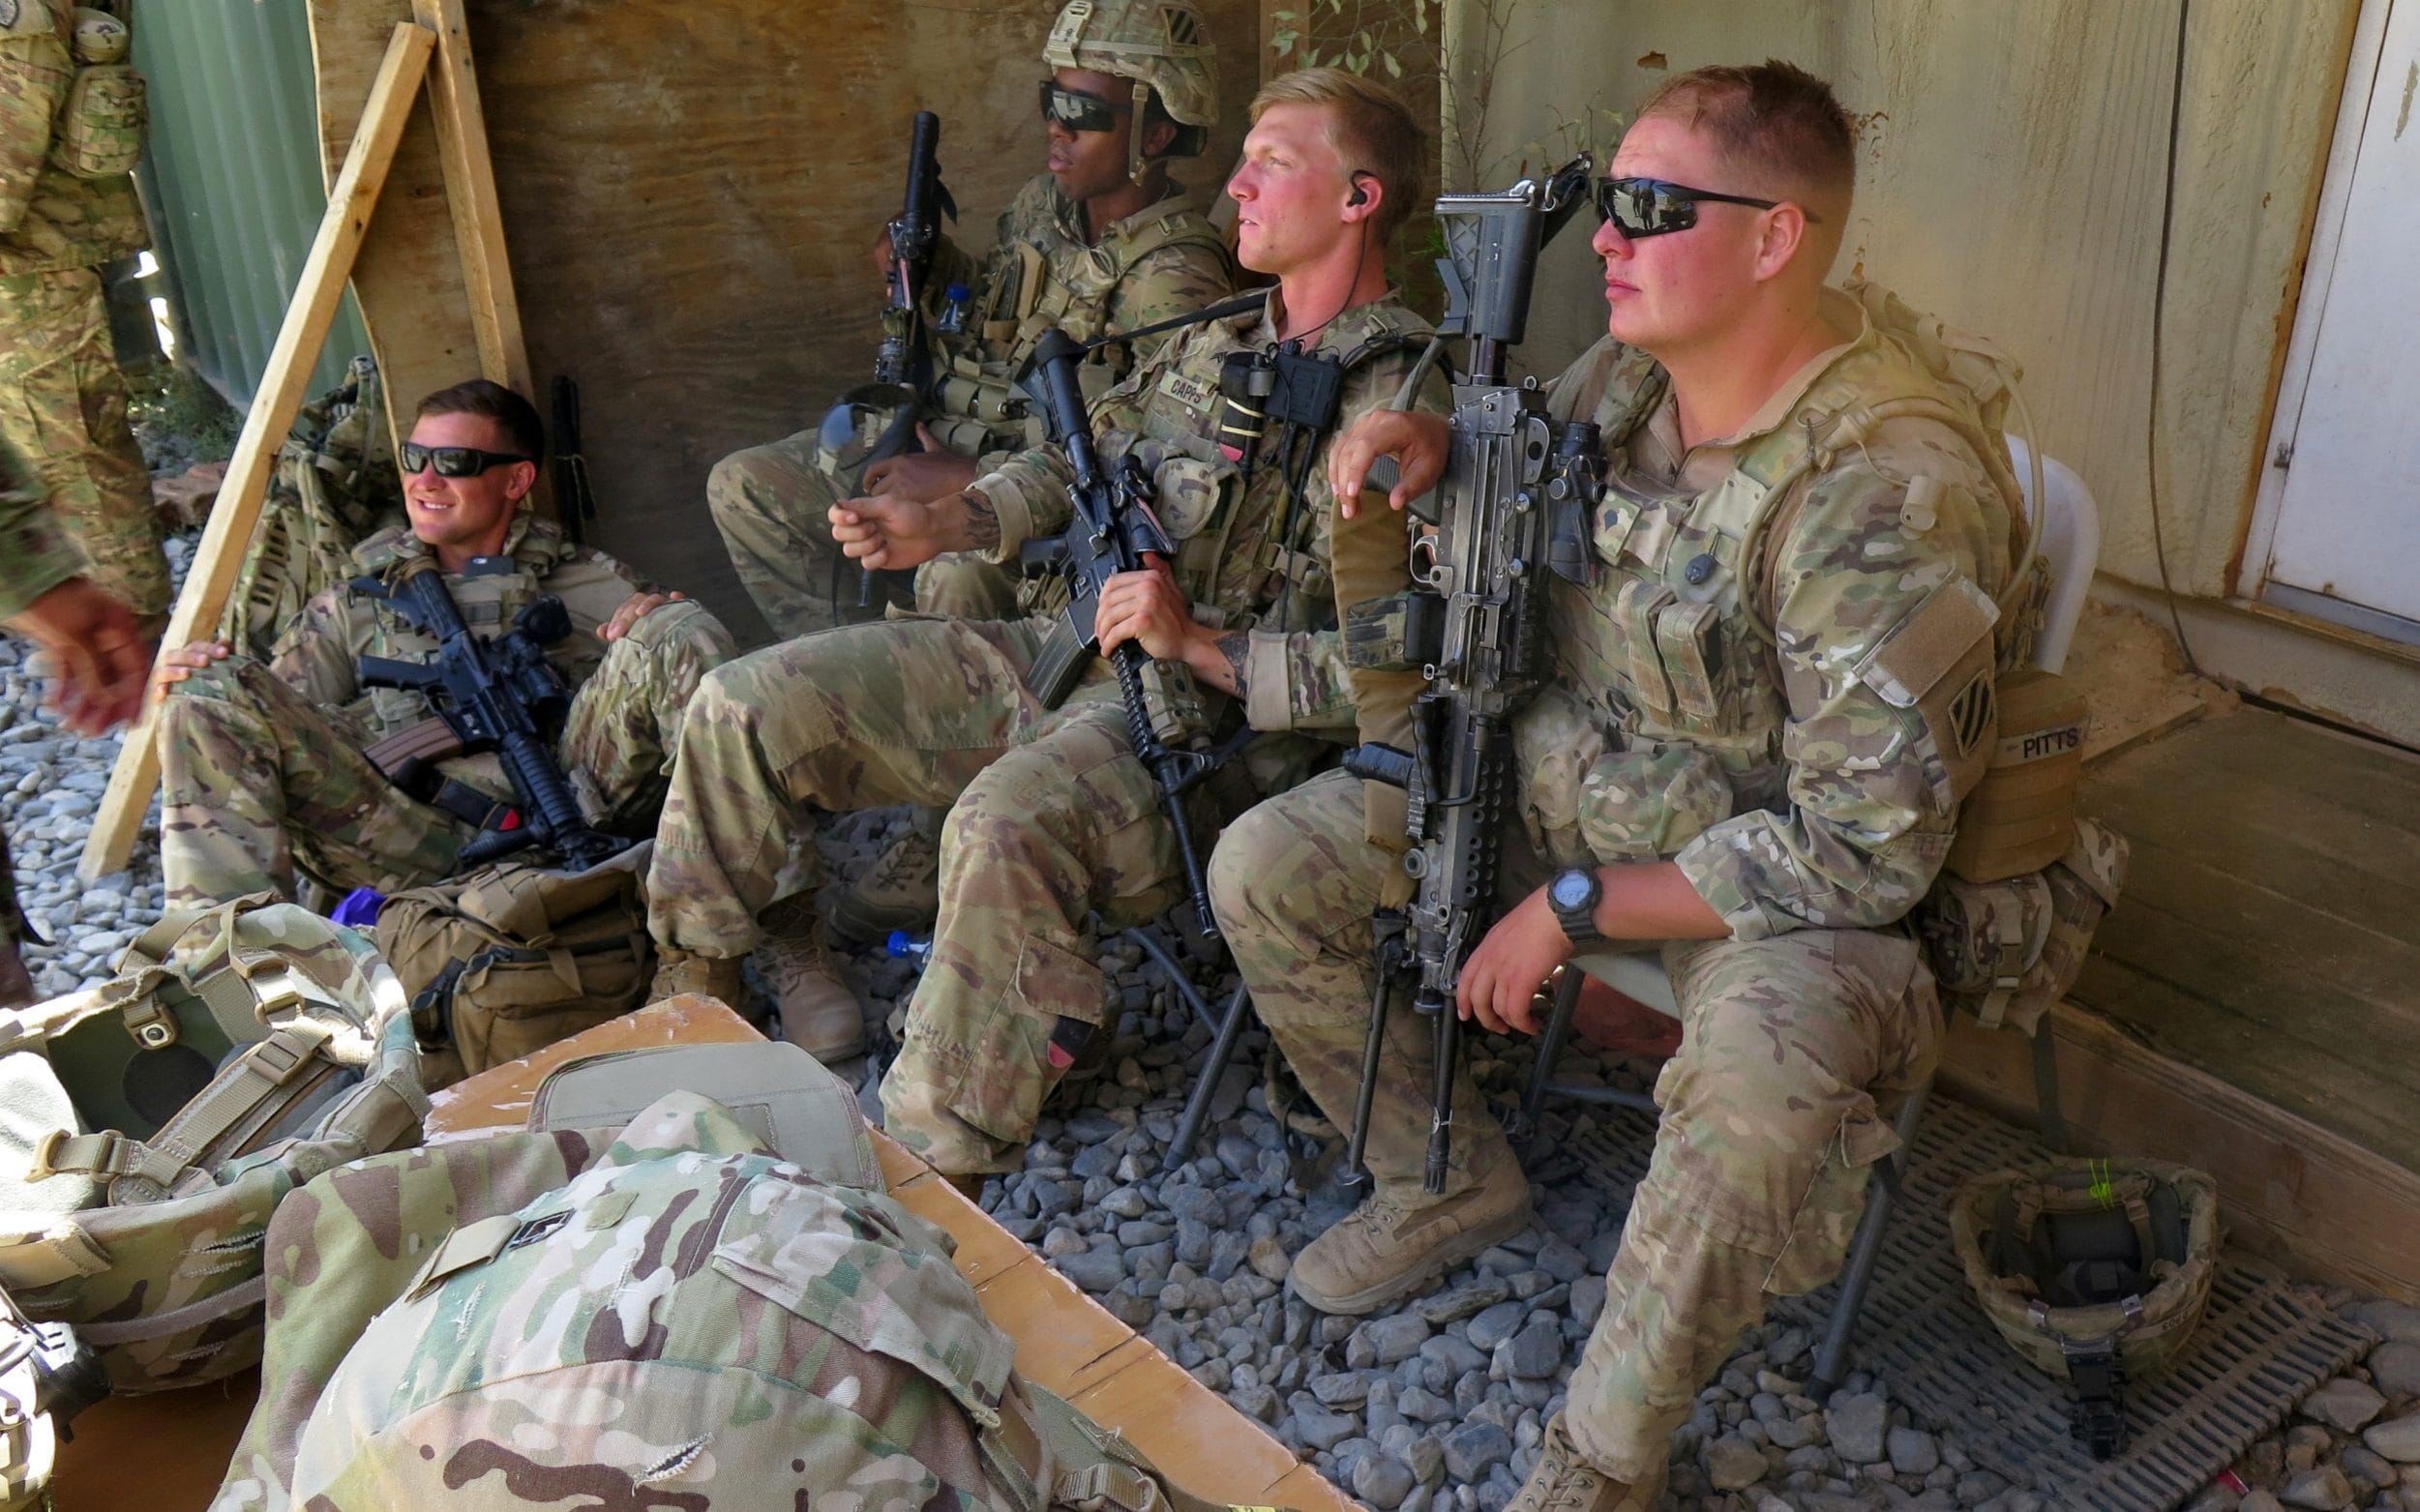 US to start Afghan withdrawal with 5,000 troops out in 20 weeks